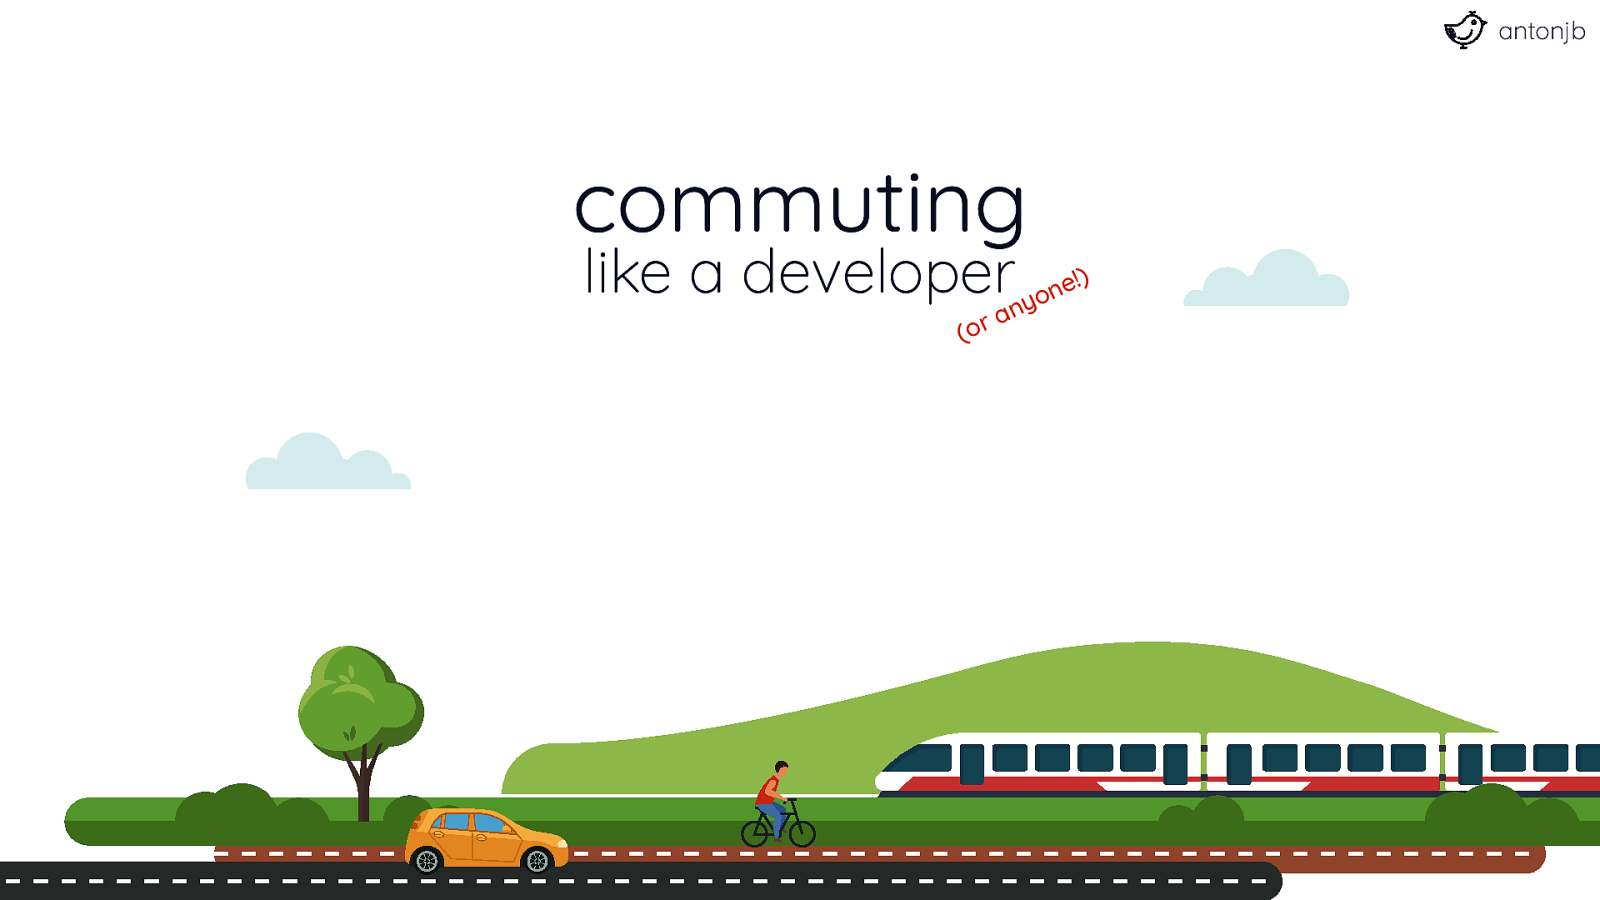 Commuting like a developer